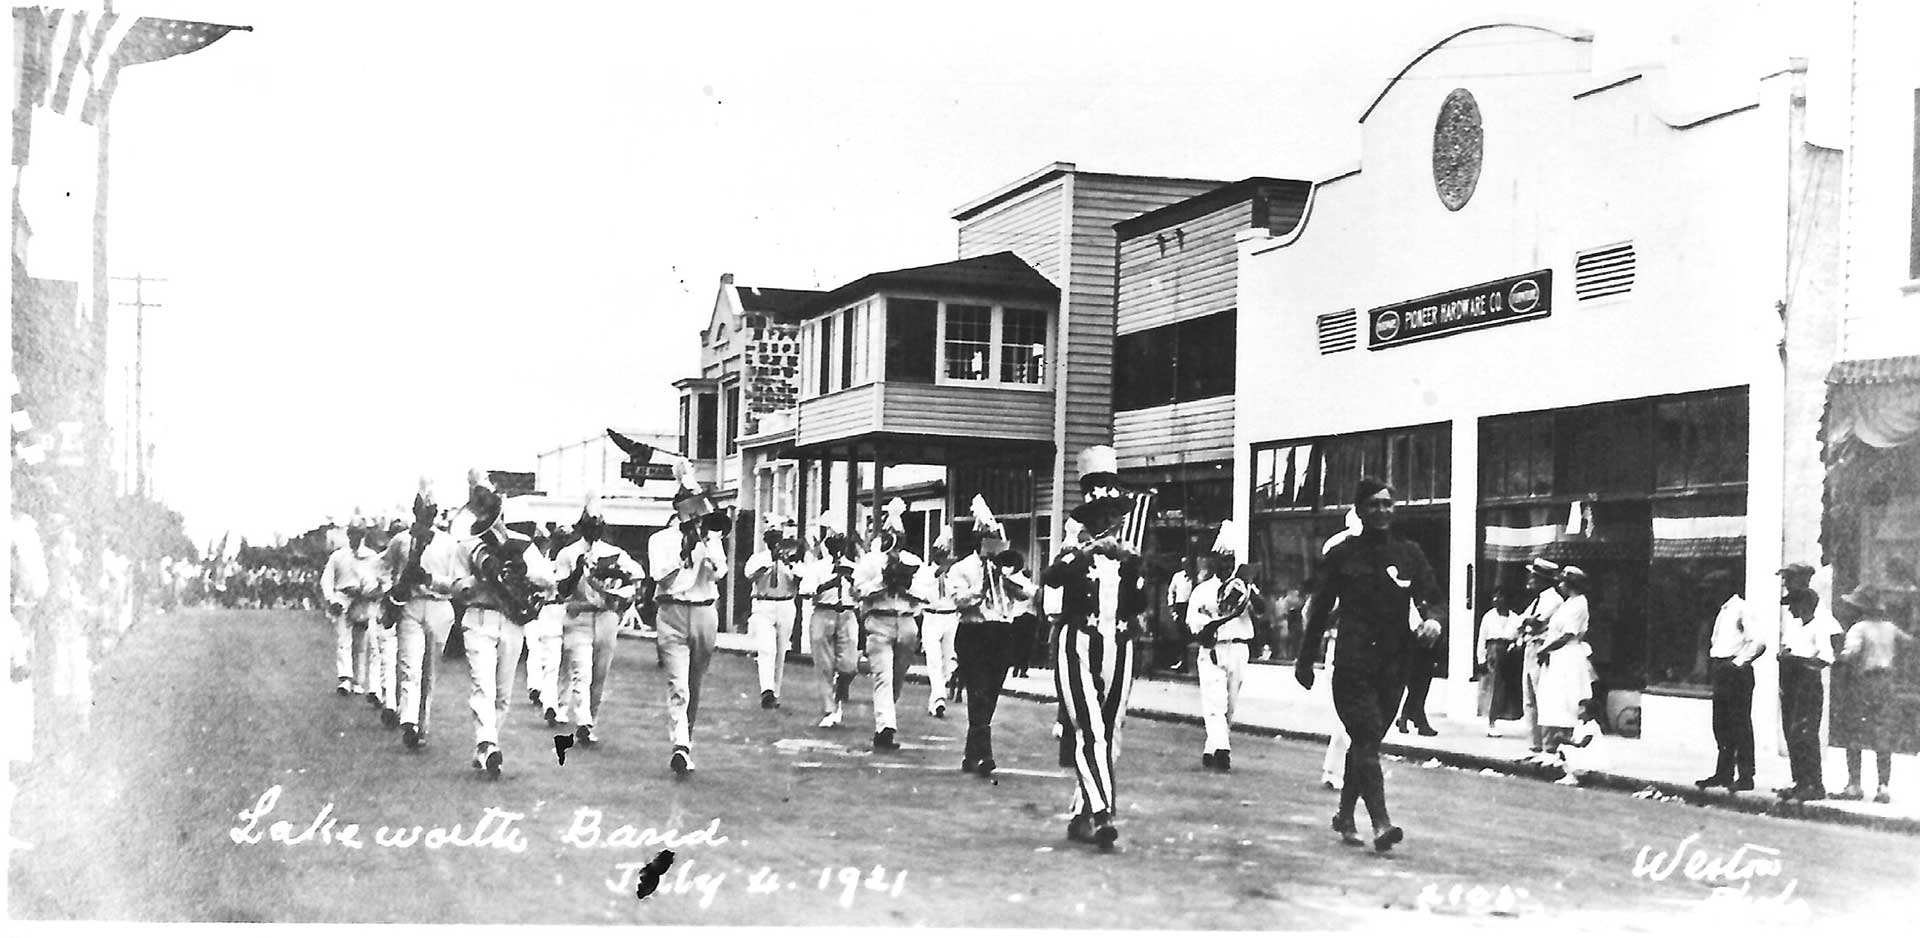 Historic image of parade in lake worth